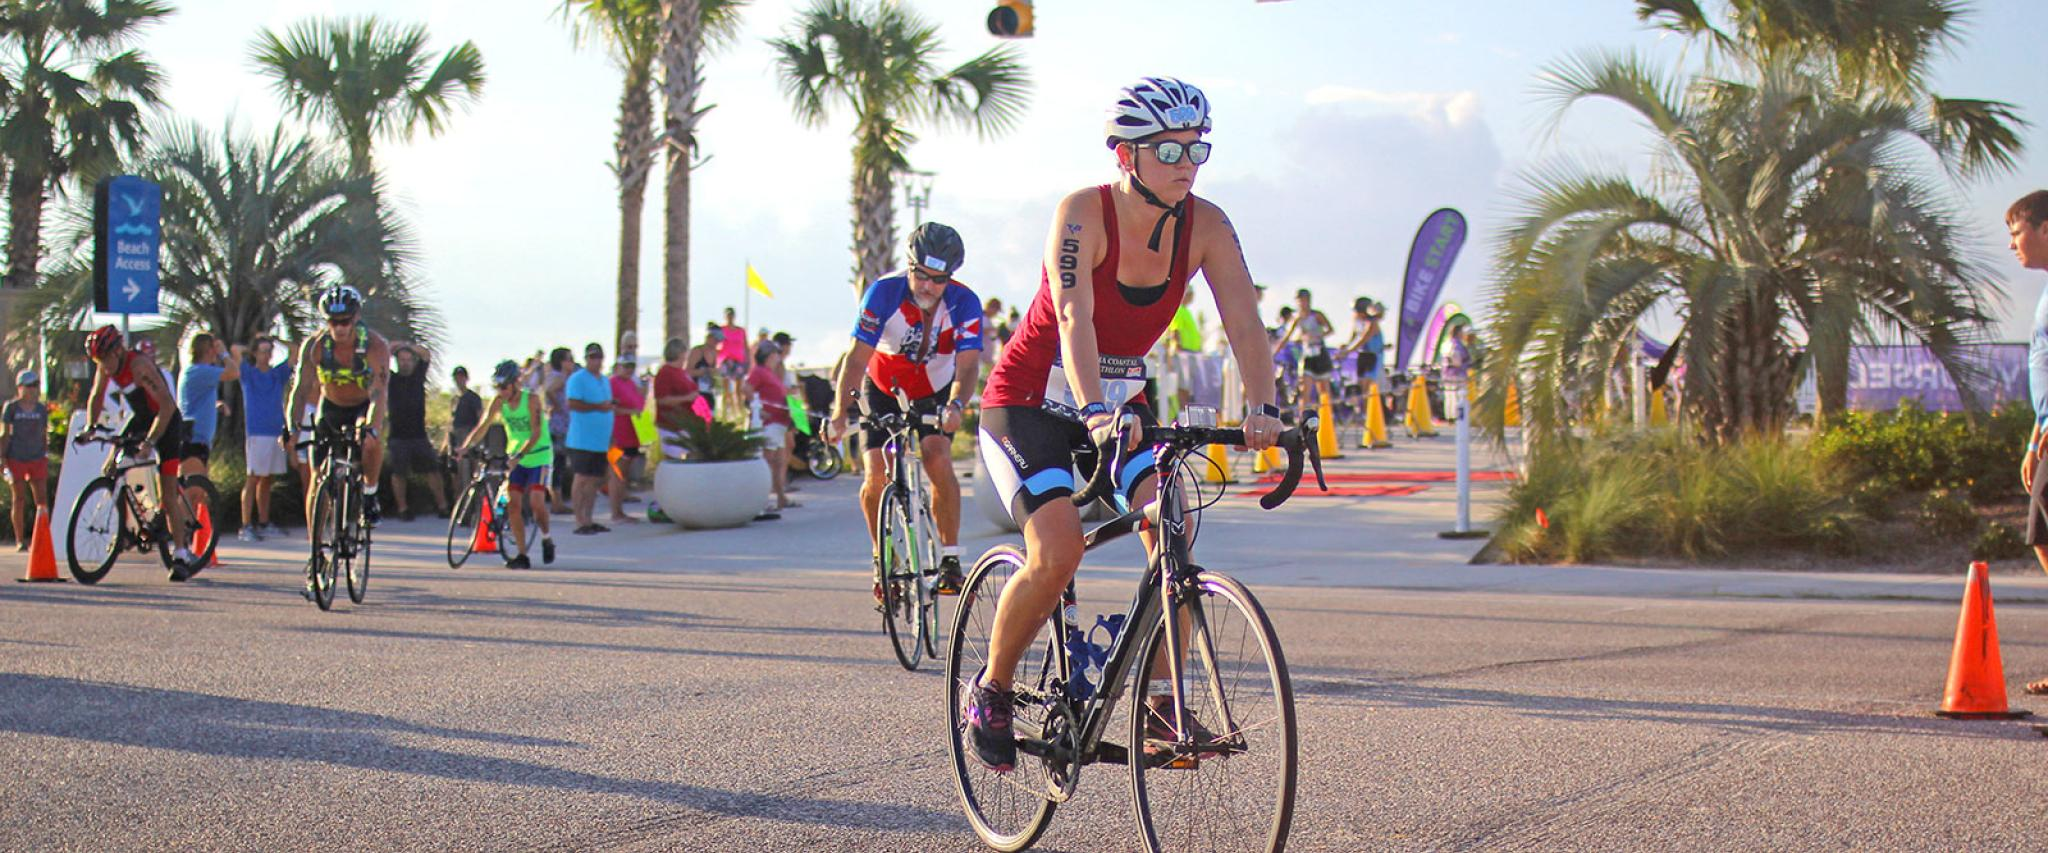 Bike riders compete in Alabama Coastal Triathlon in Gulf Shores AL